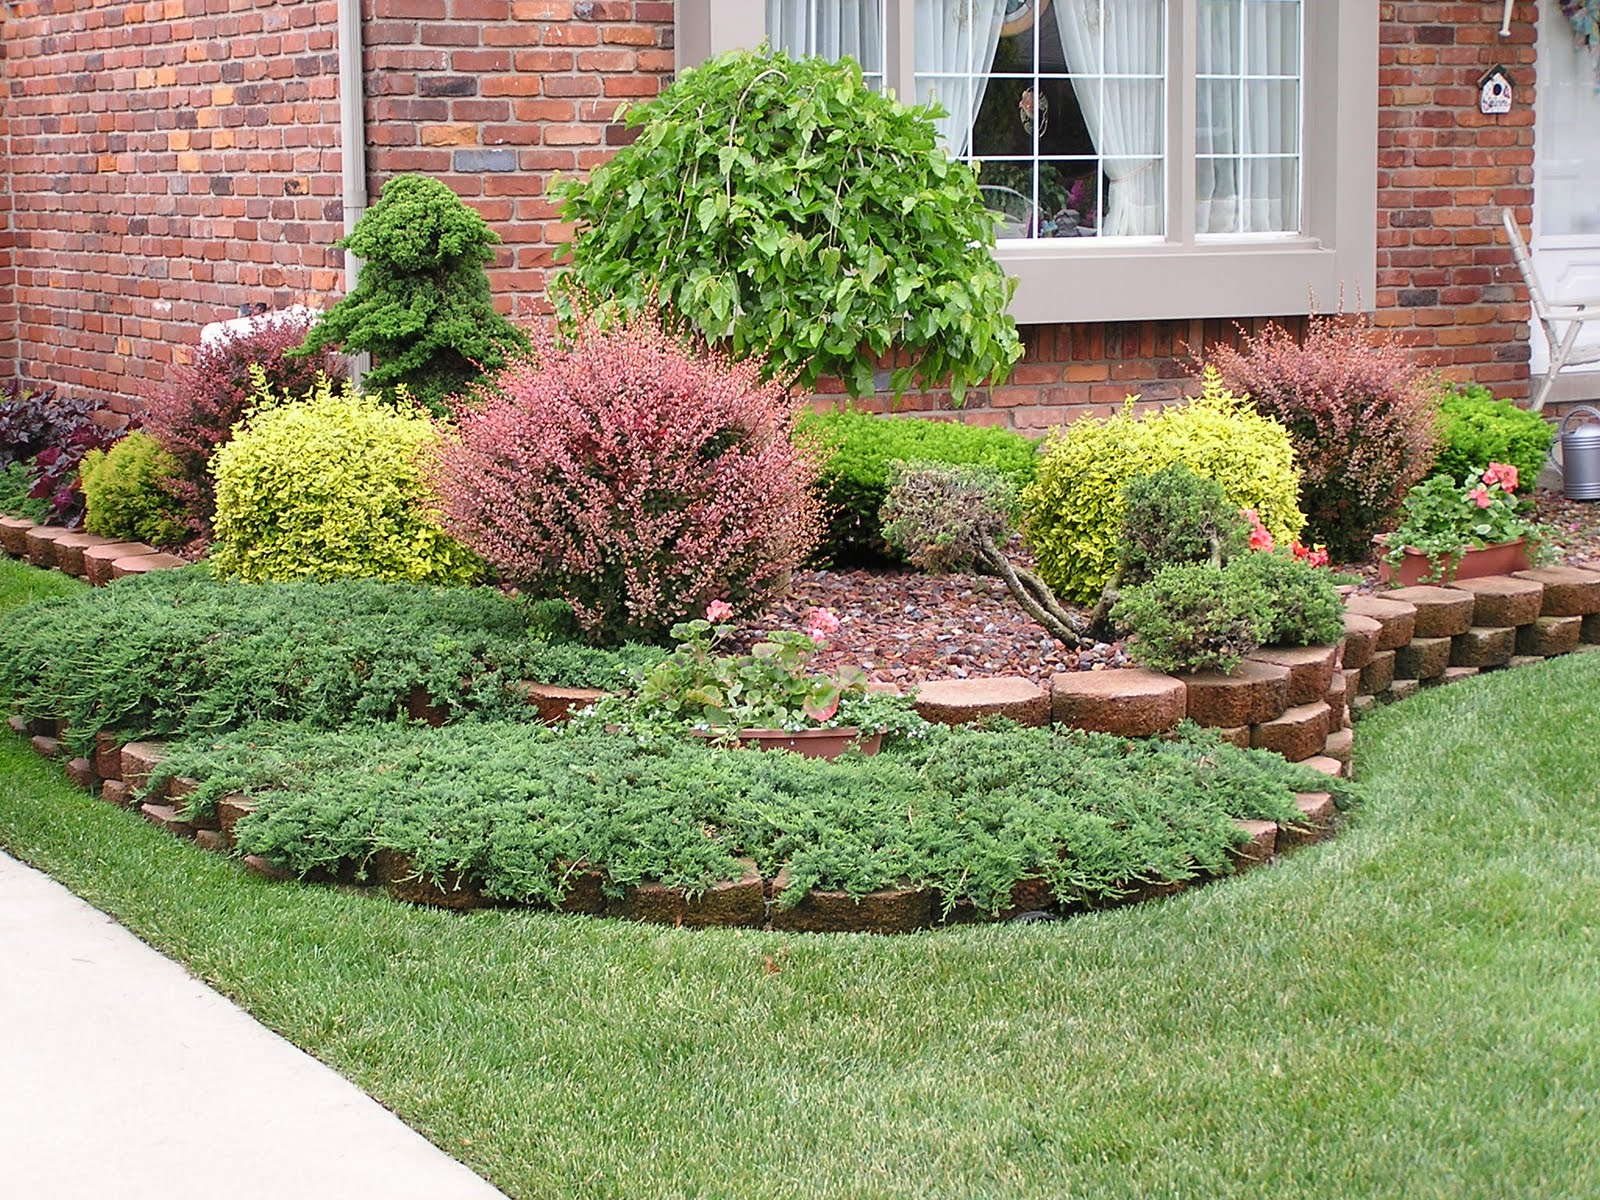 D i y d e s i g n curb appeal part 2 the landscaping for Garden and landscaping ideas